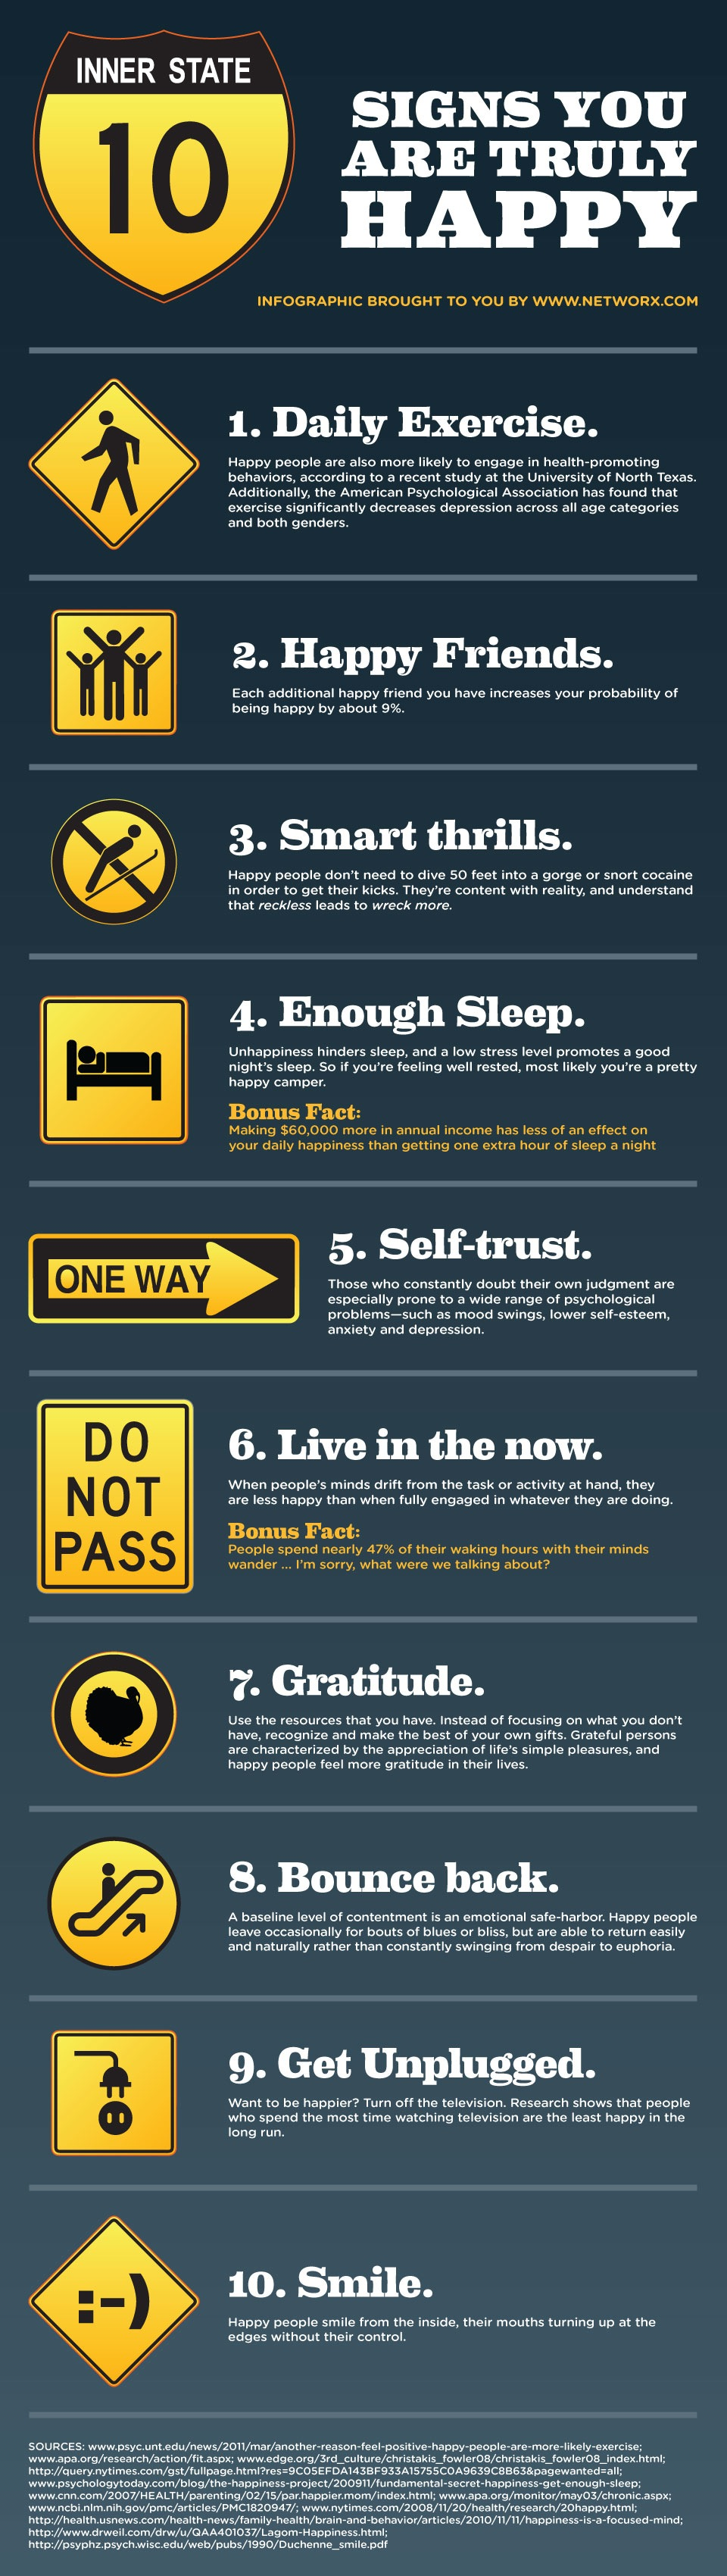 10 Signs that Show You are Happy